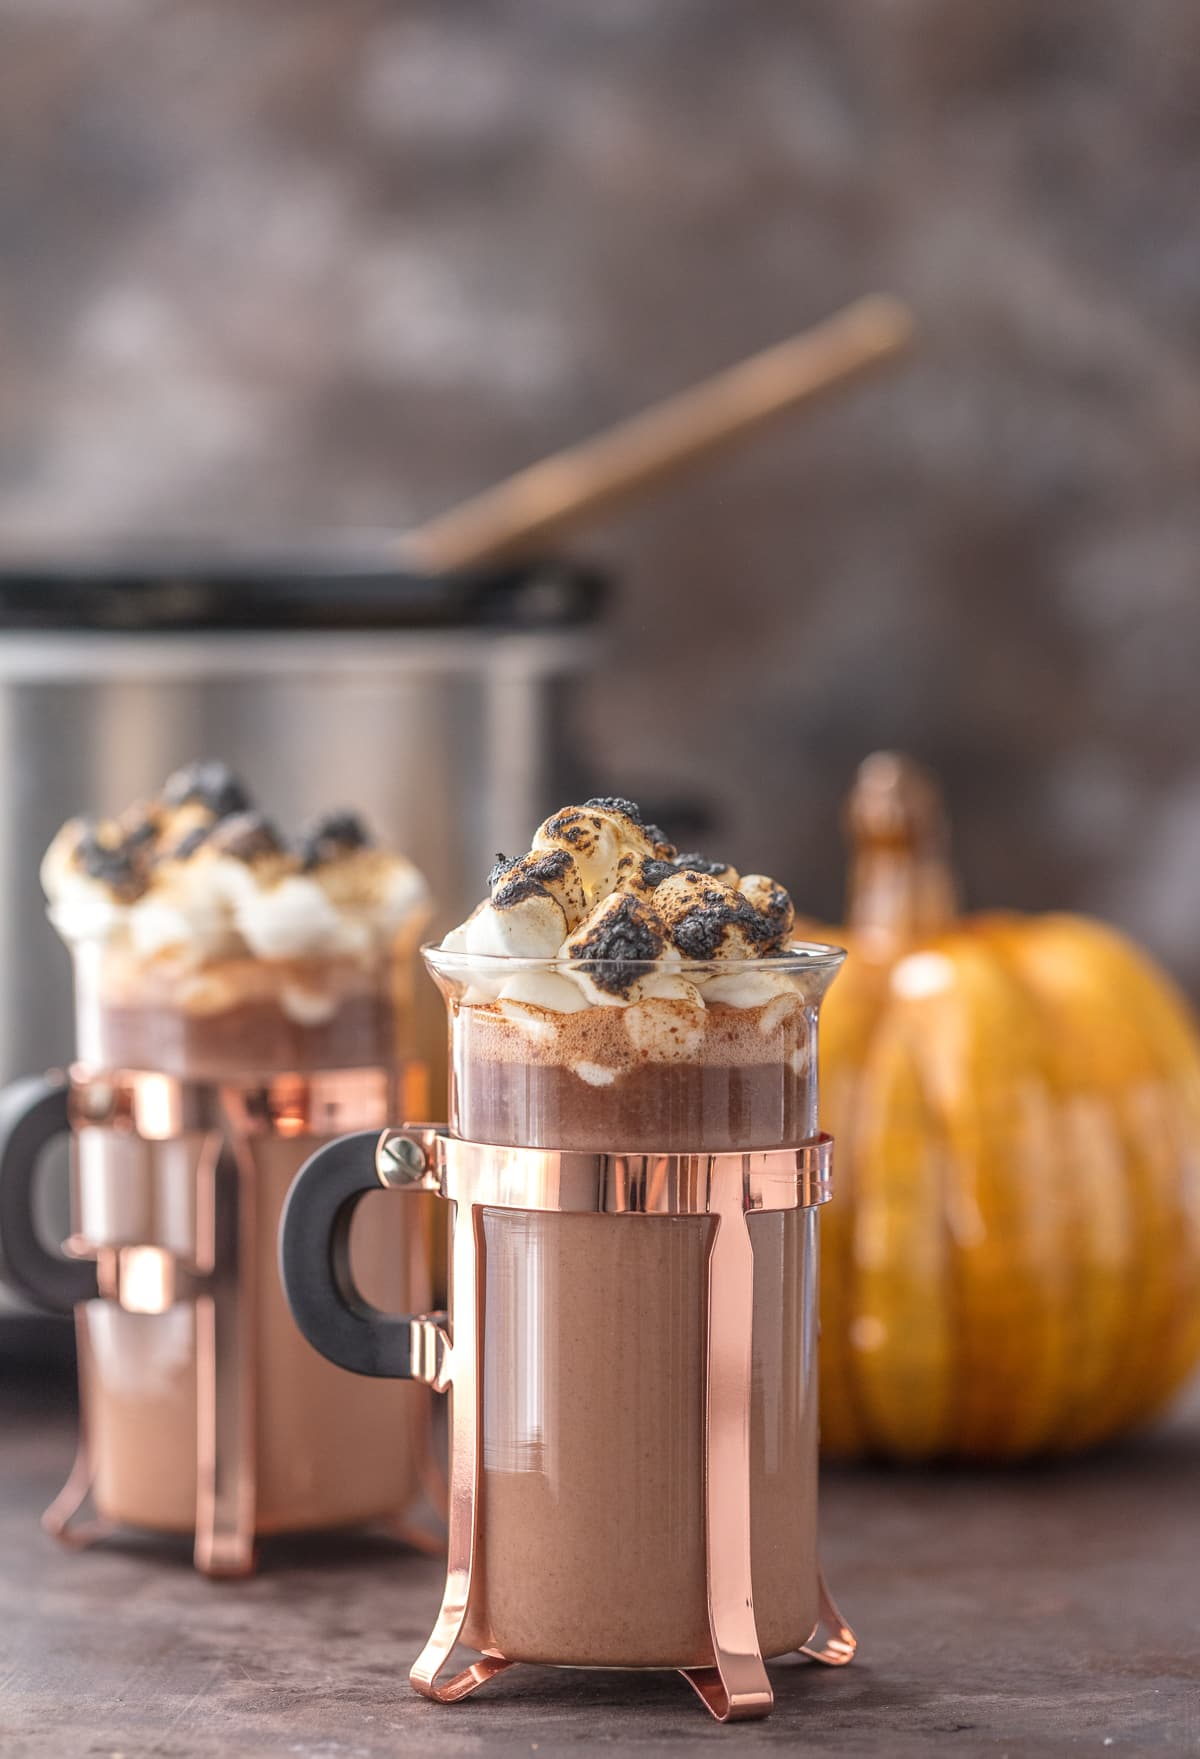 Spiked Pumpkin Spice Hot Chocolate in glass mugs, topped with toasted marshmallows